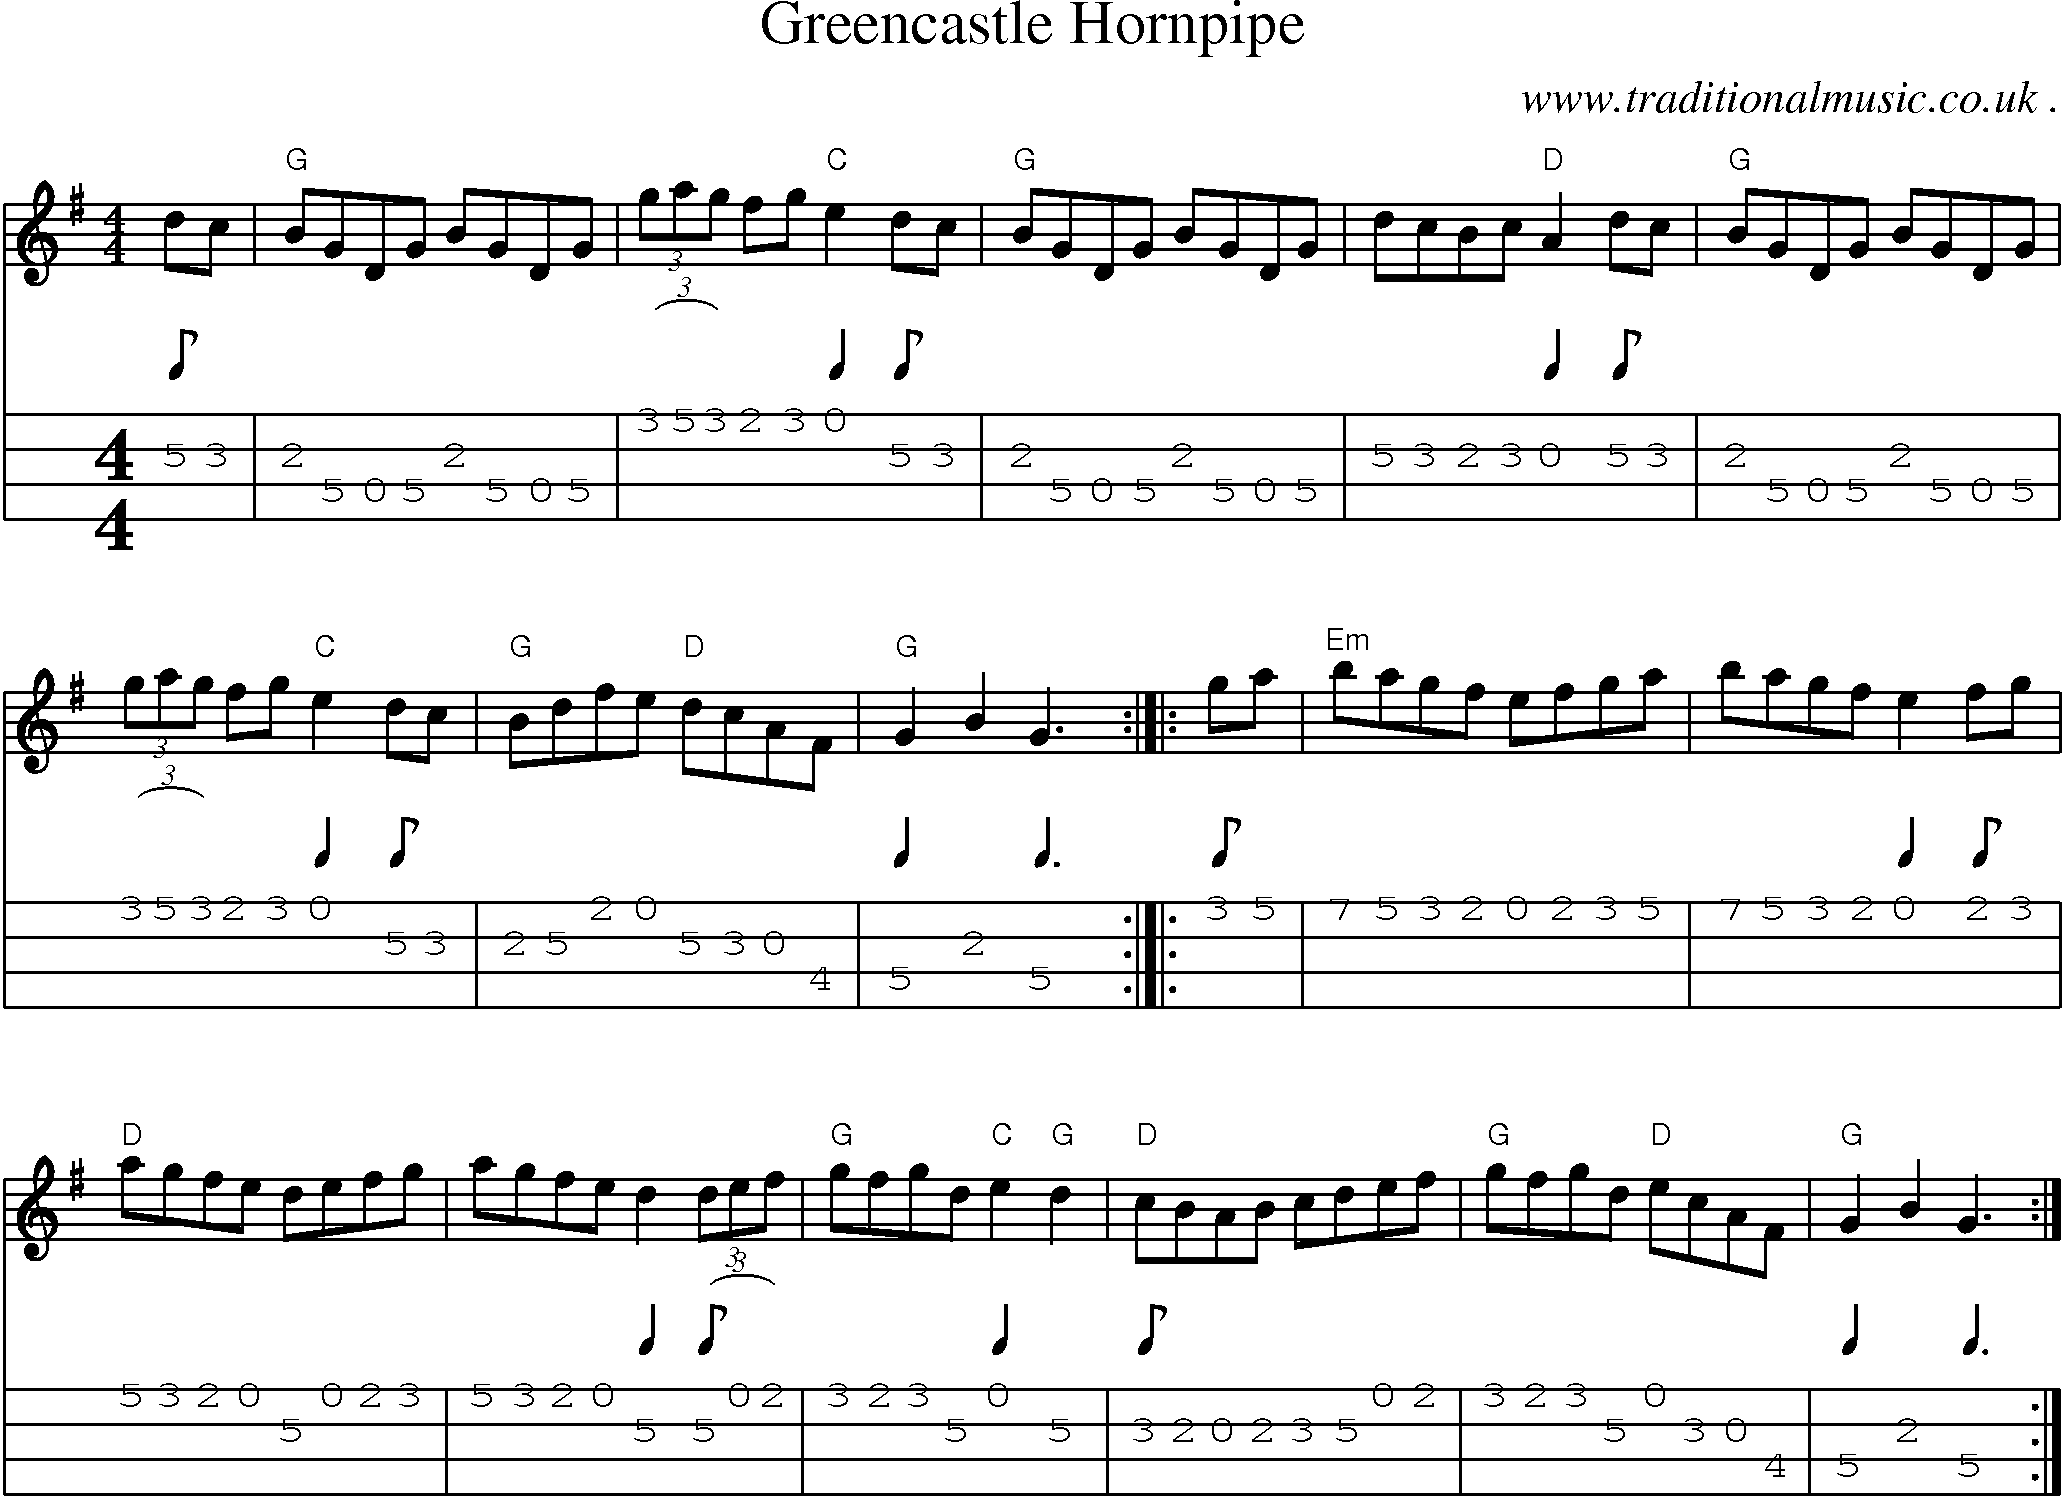 Music Score And Guitar Tabs For Greencastle Hornpipe